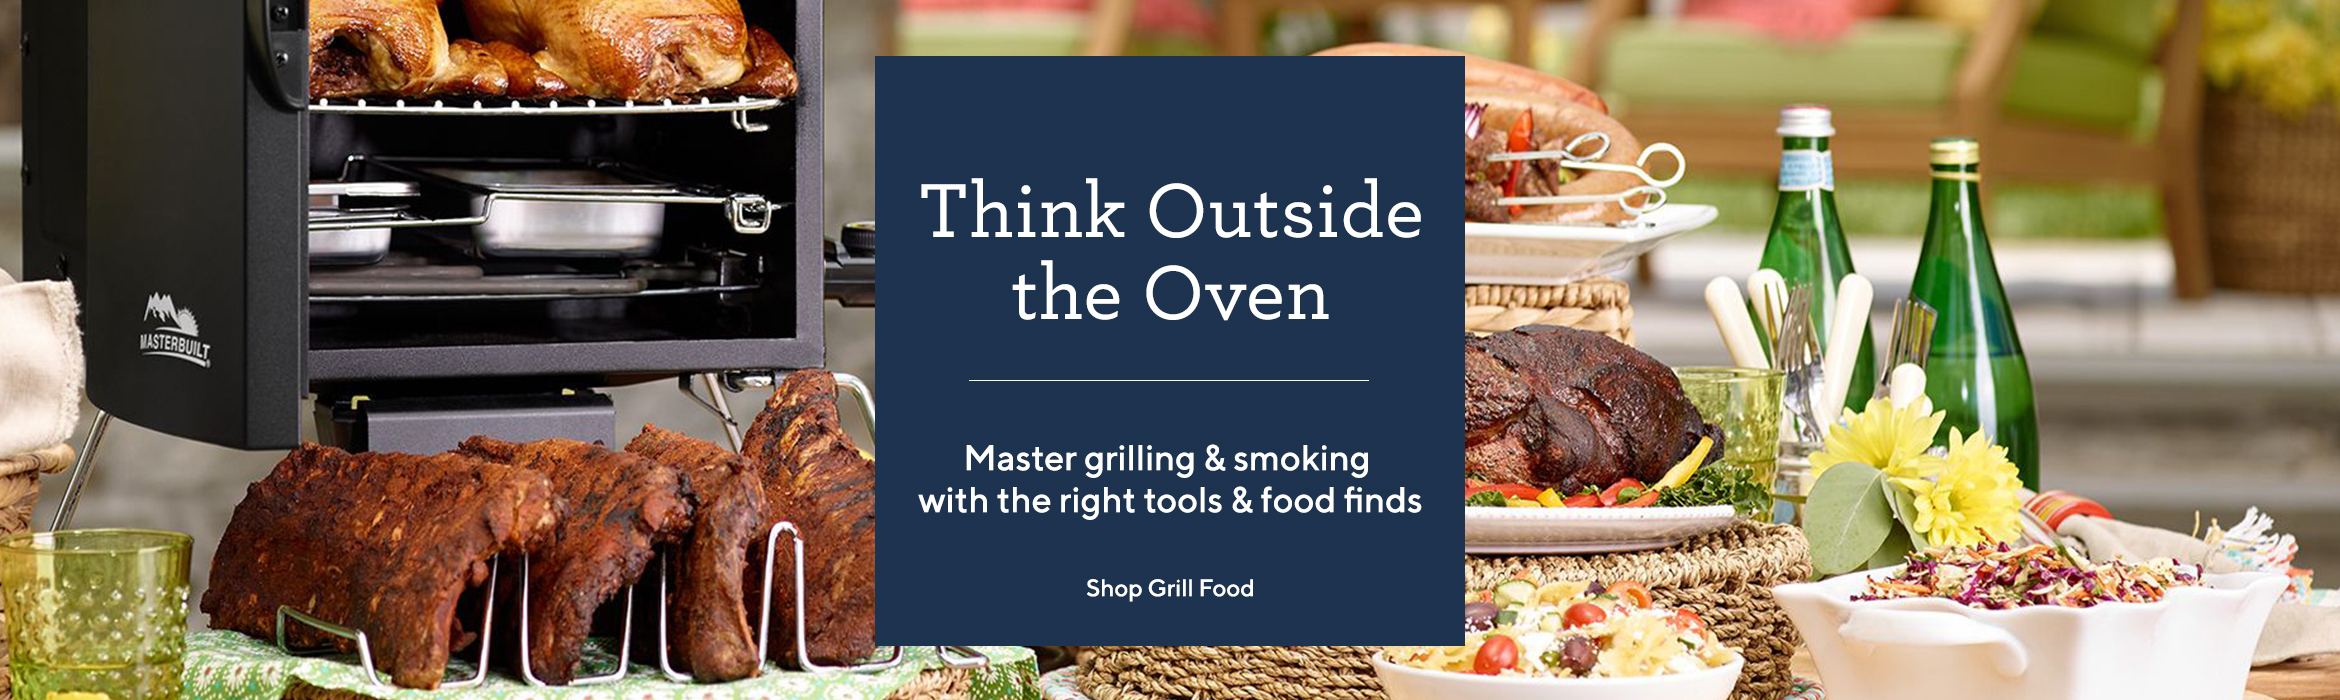 Think Outside the Oven  Master grilling & smoking with the right tools & food finds